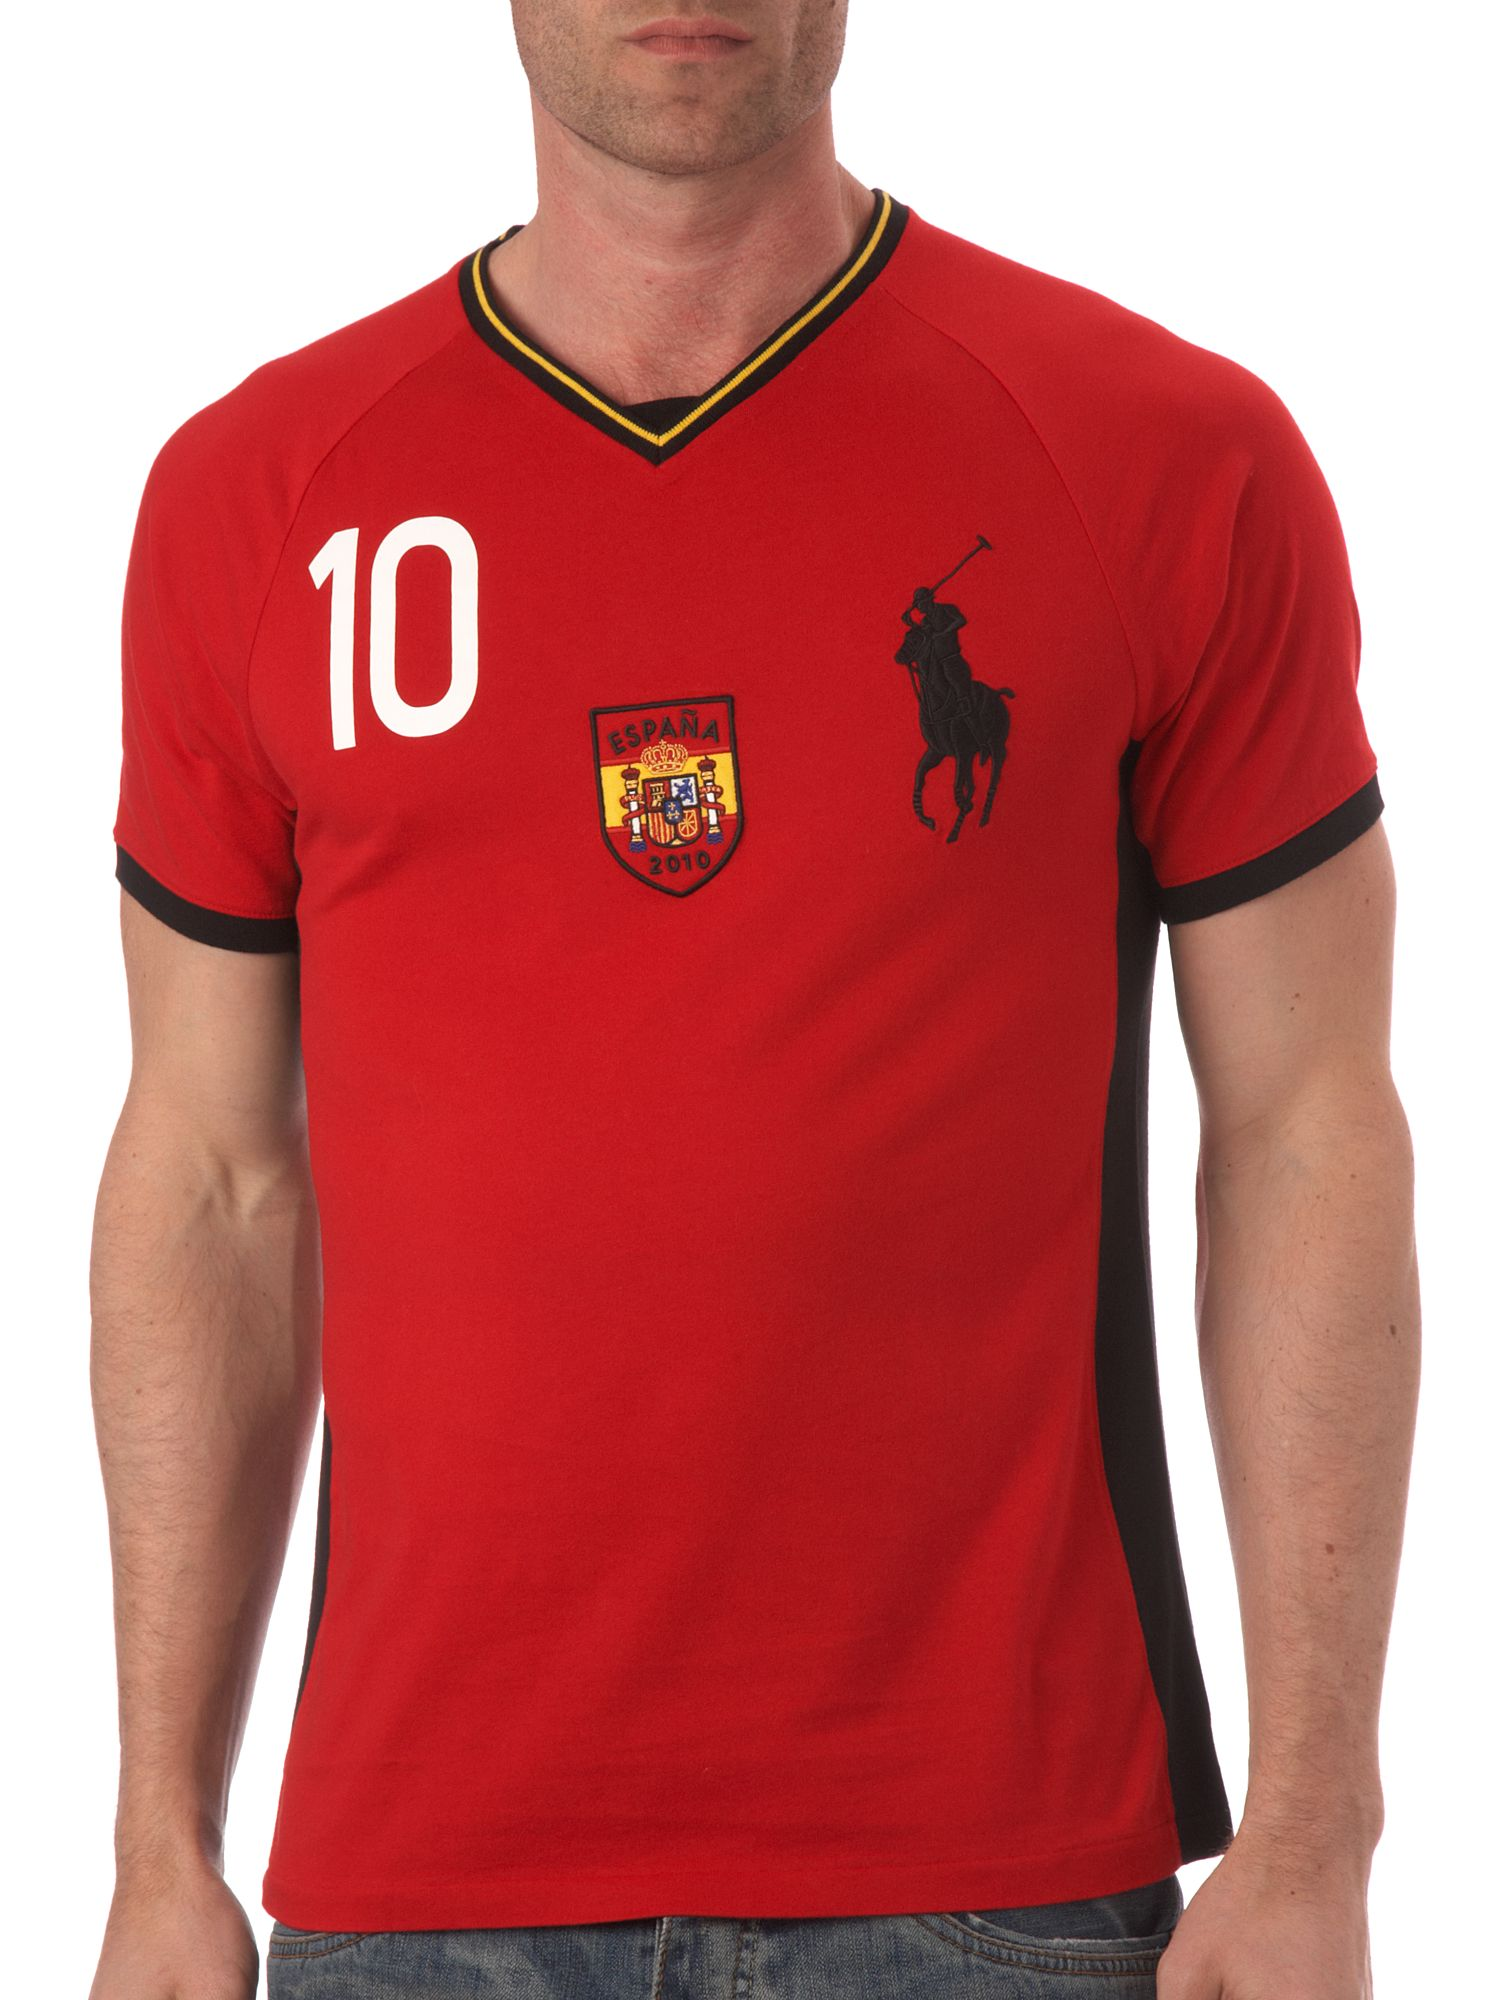 Ralph Lauren Spain custom fitted T-shirt Red product image